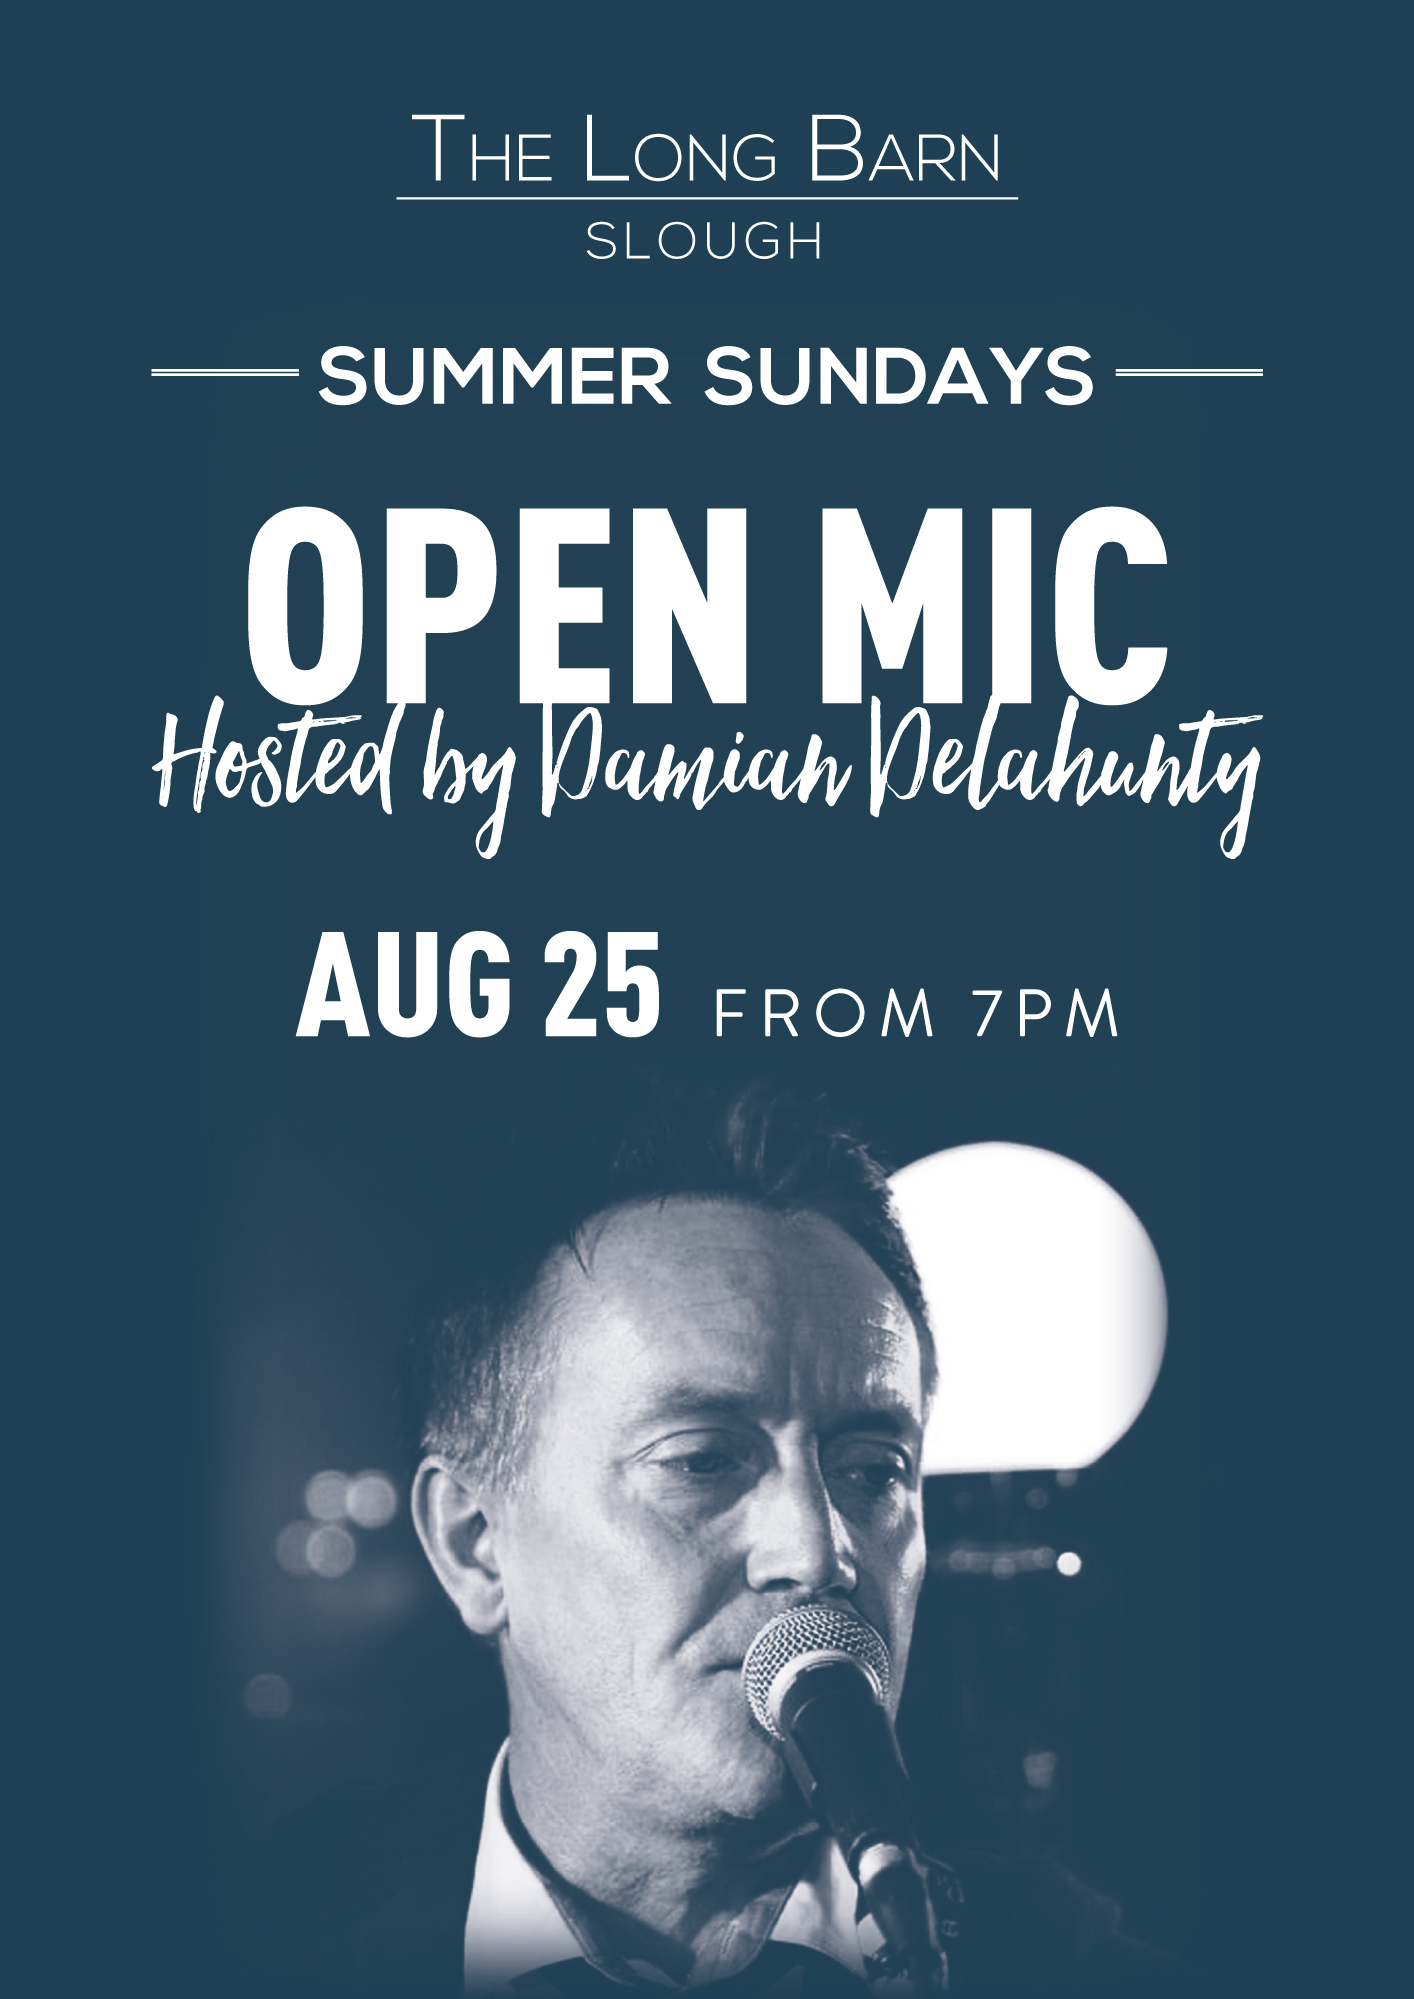 Open Mic with Damian Delahunty